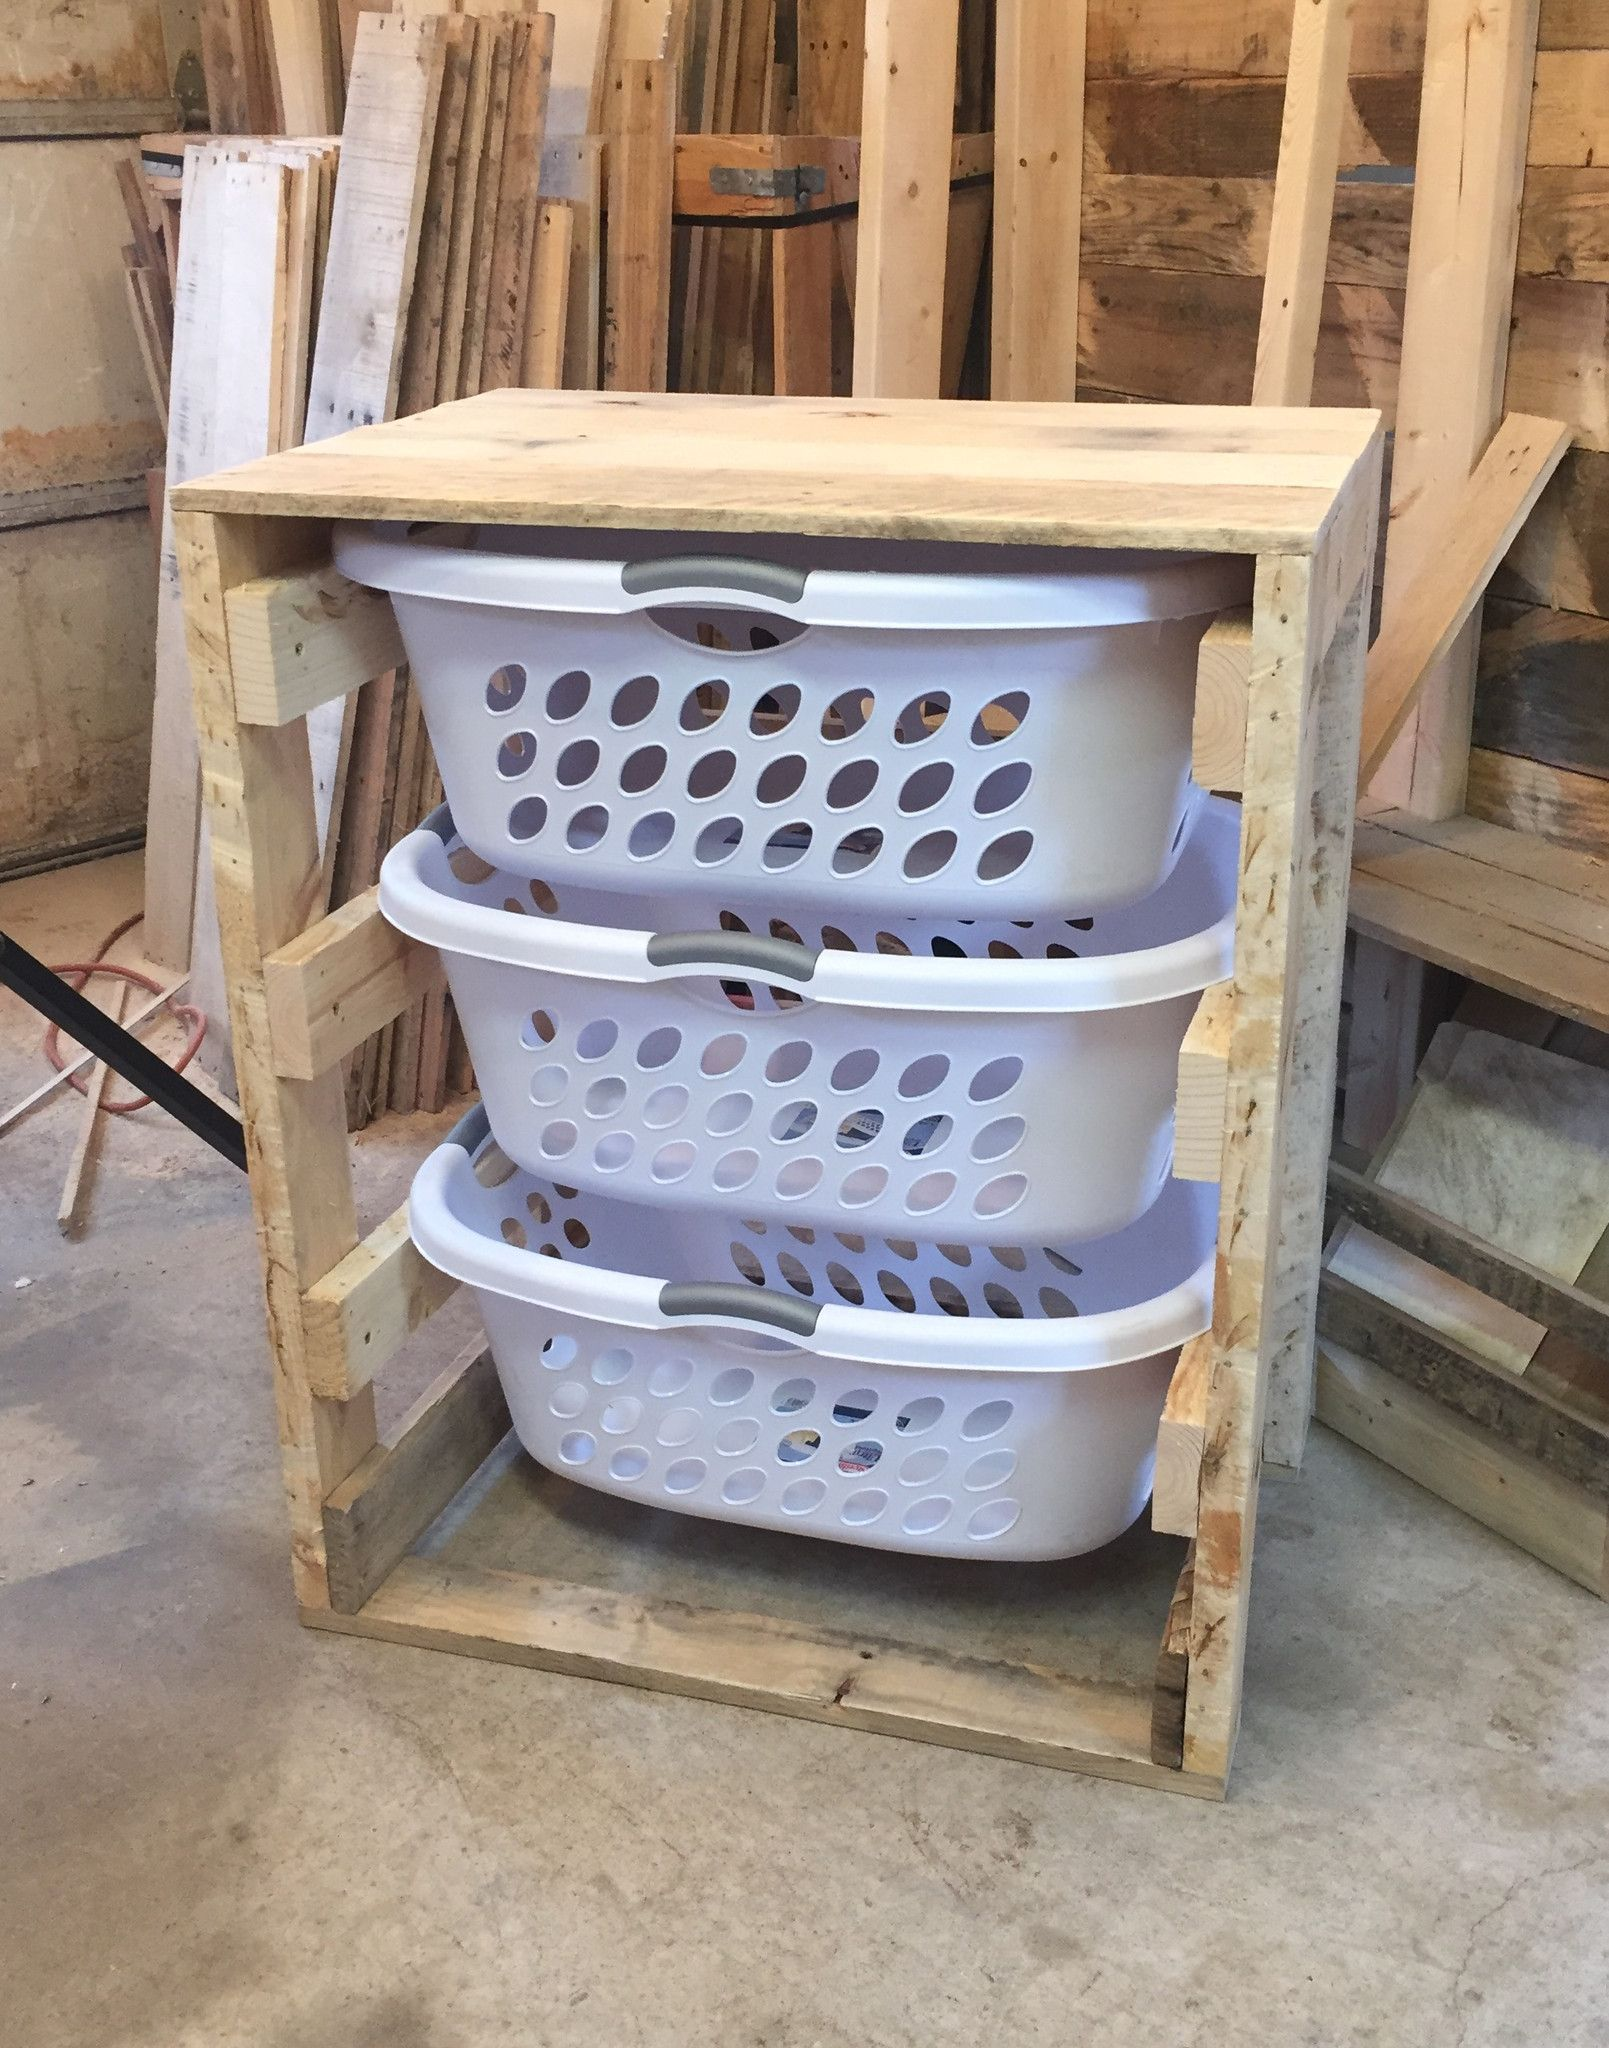 Laundry Basket Dresser Laundry Basket Dresser Diy Laundry Laundry Room Organization